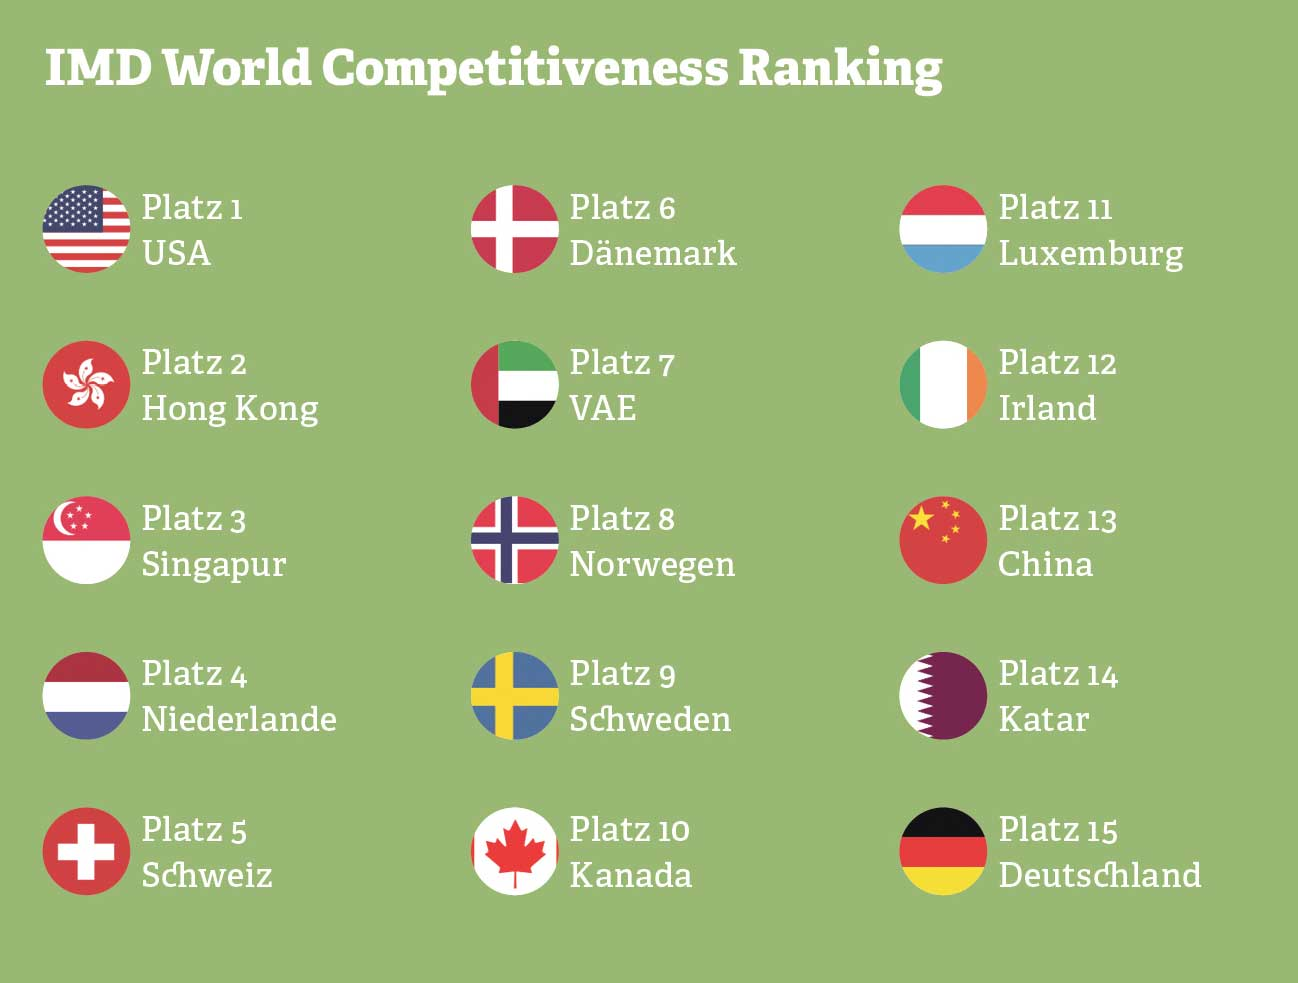 Grafik: IMD World Competitiveness Ranking